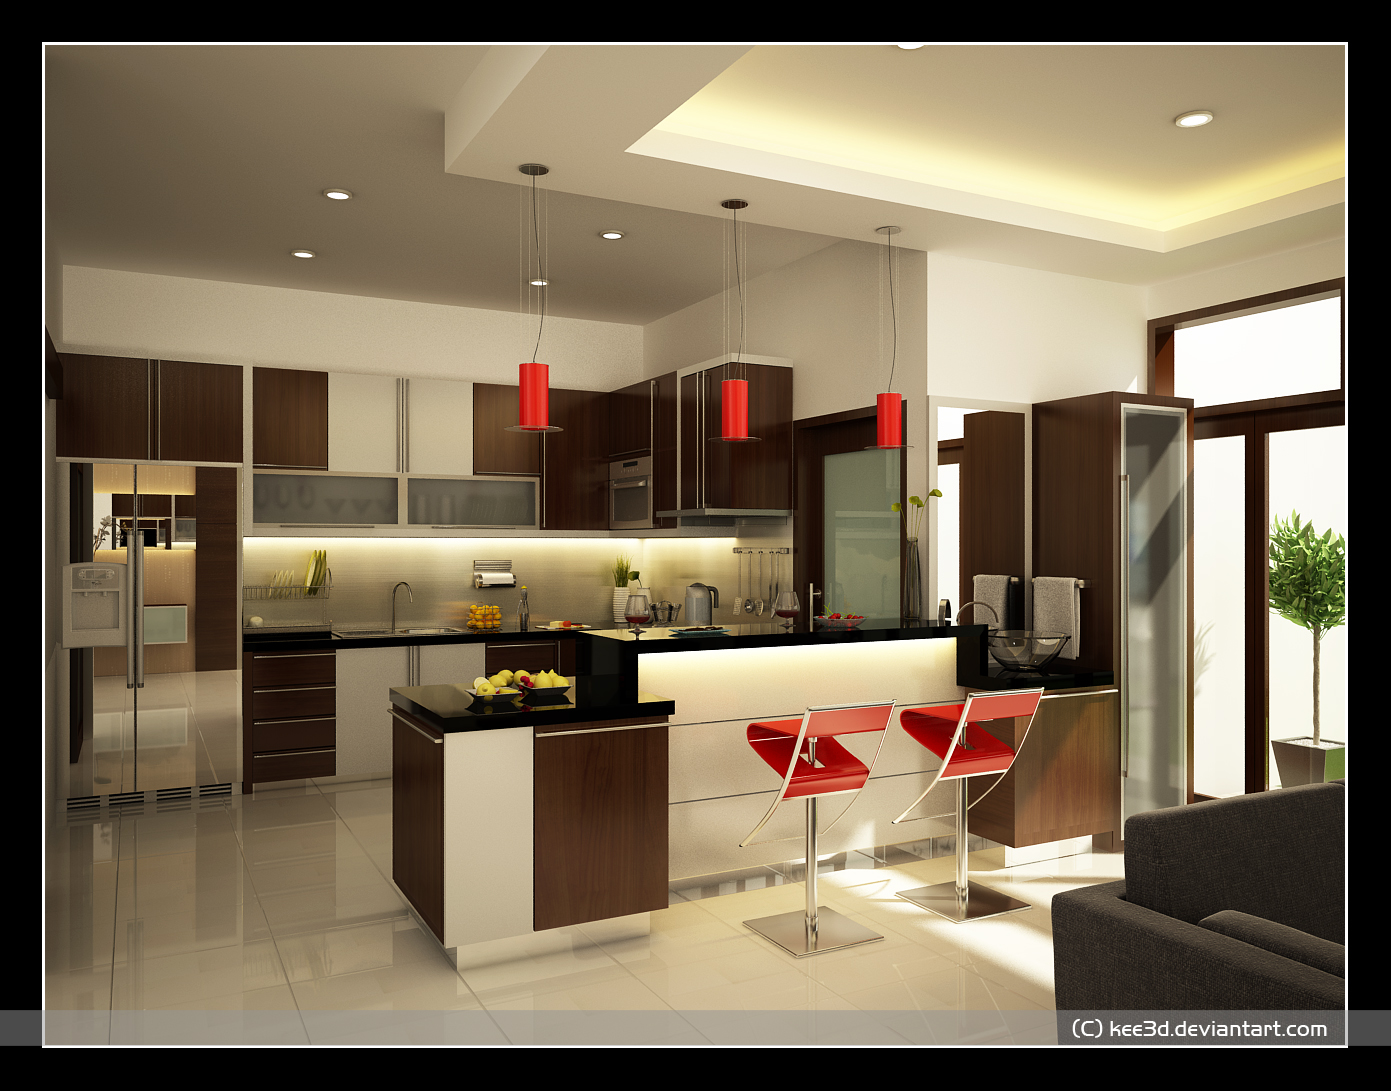 Beautiful Kitchen Design Ideas 1391 x 1091 · 789 kB · jpeg